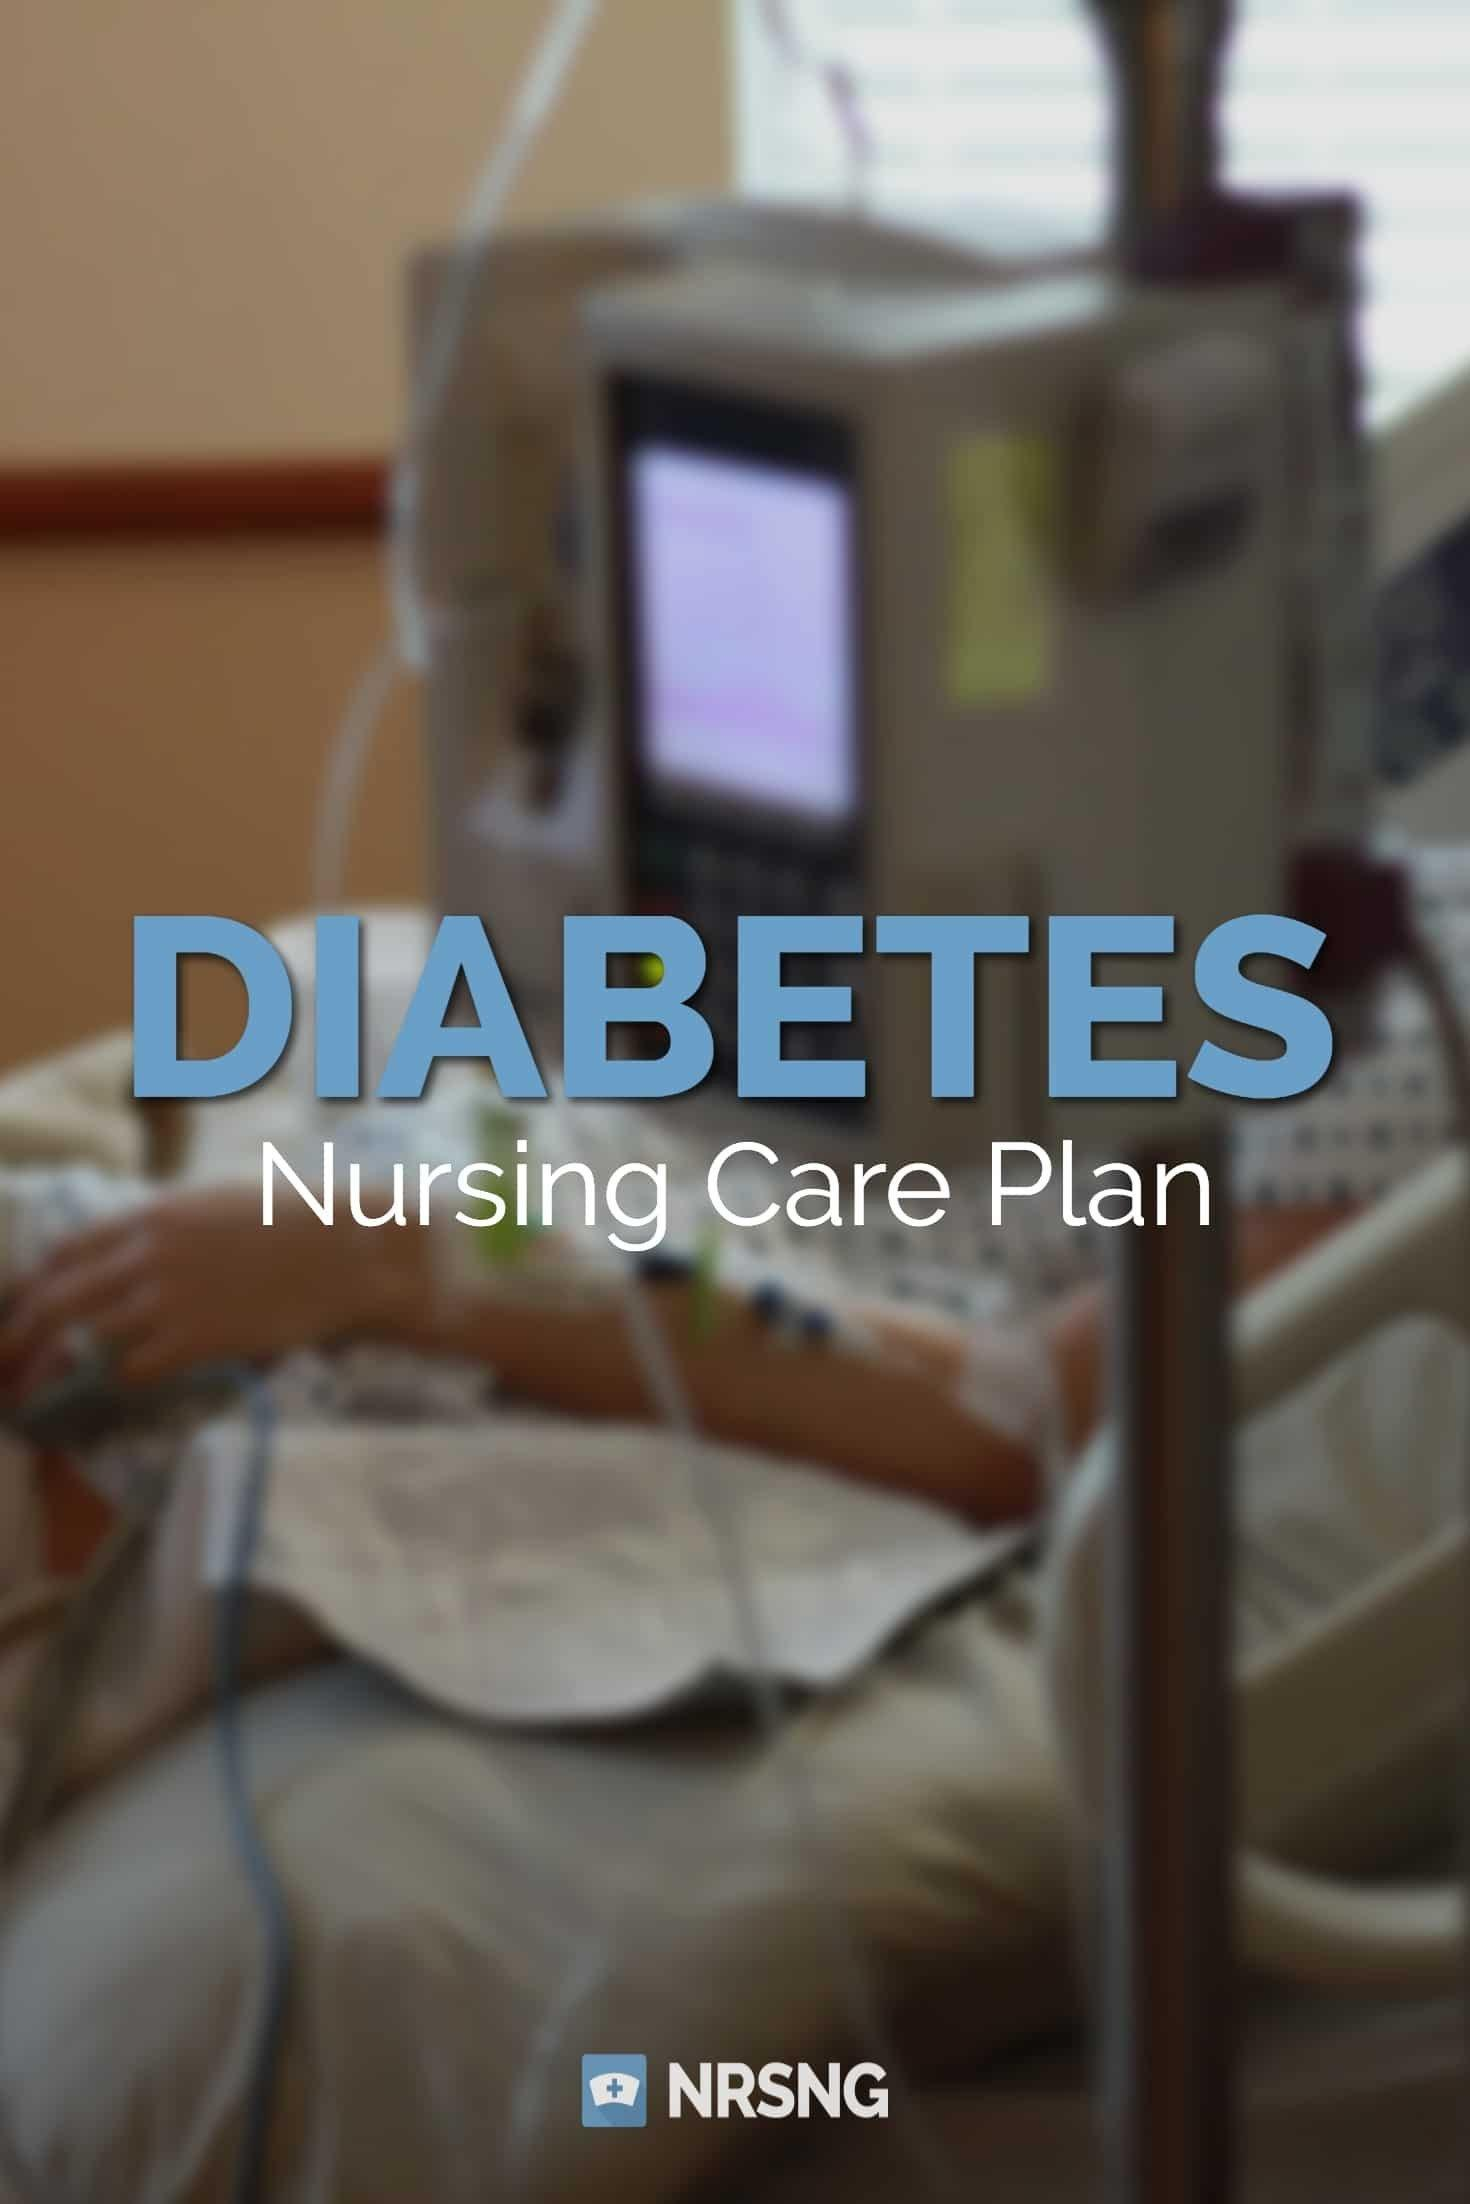 Nursing Care Plan for Diabetes